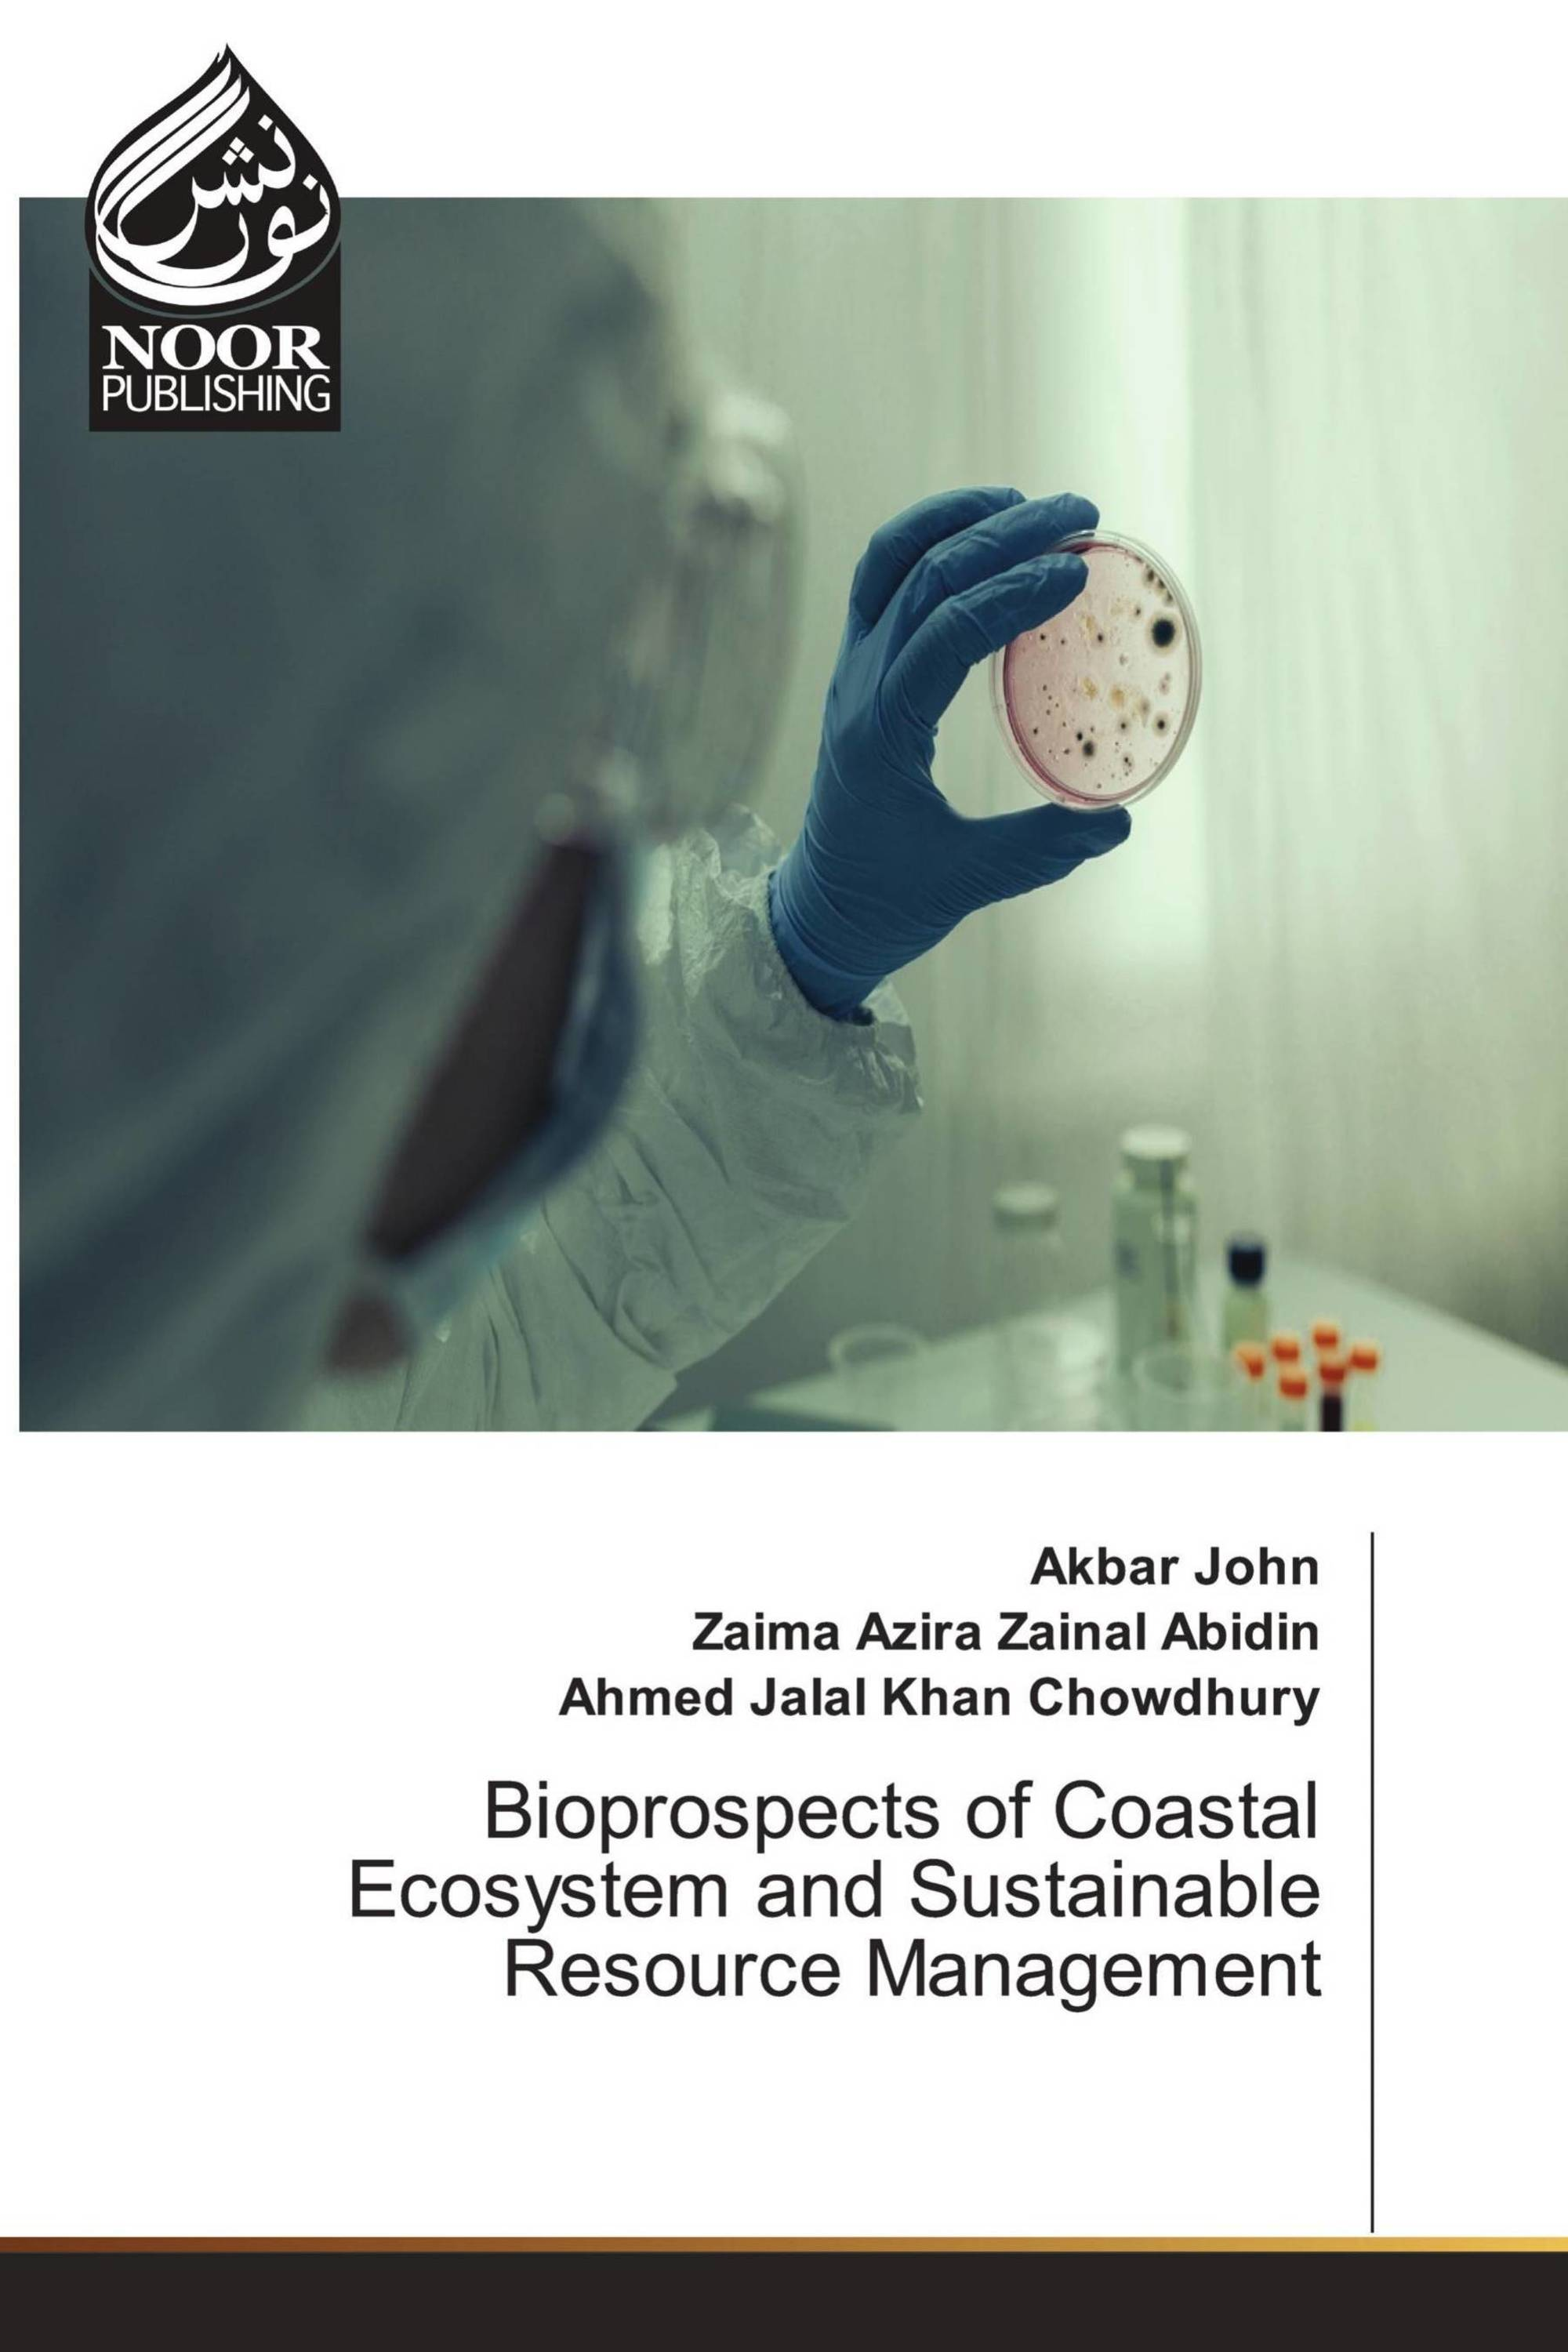 Bioprospects of Coastal Ecosystem and Sustainable Resource Management